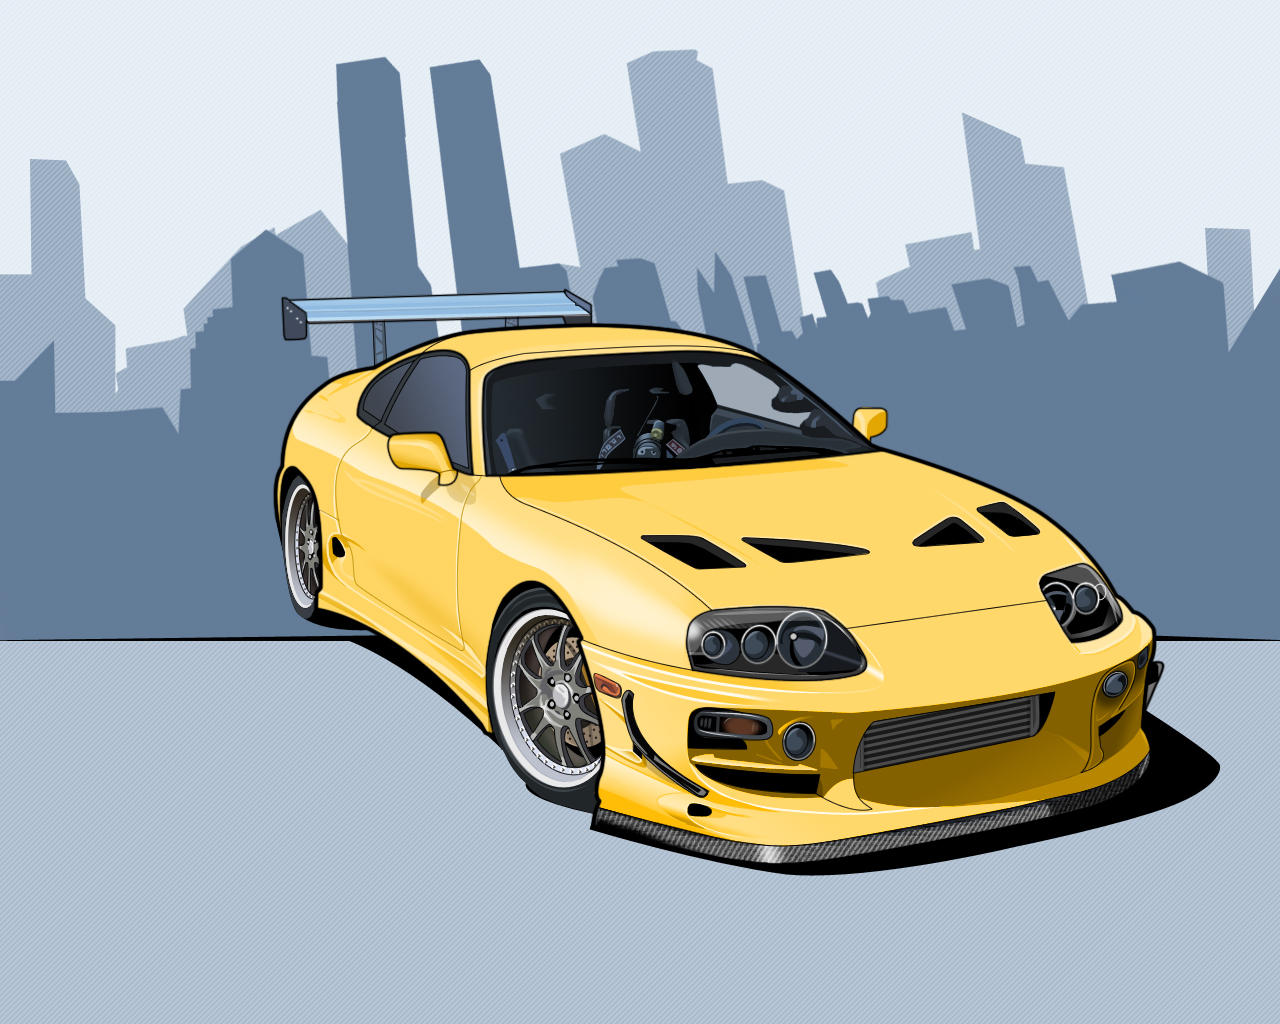 Bomex Supra Wallpaper by donbenni